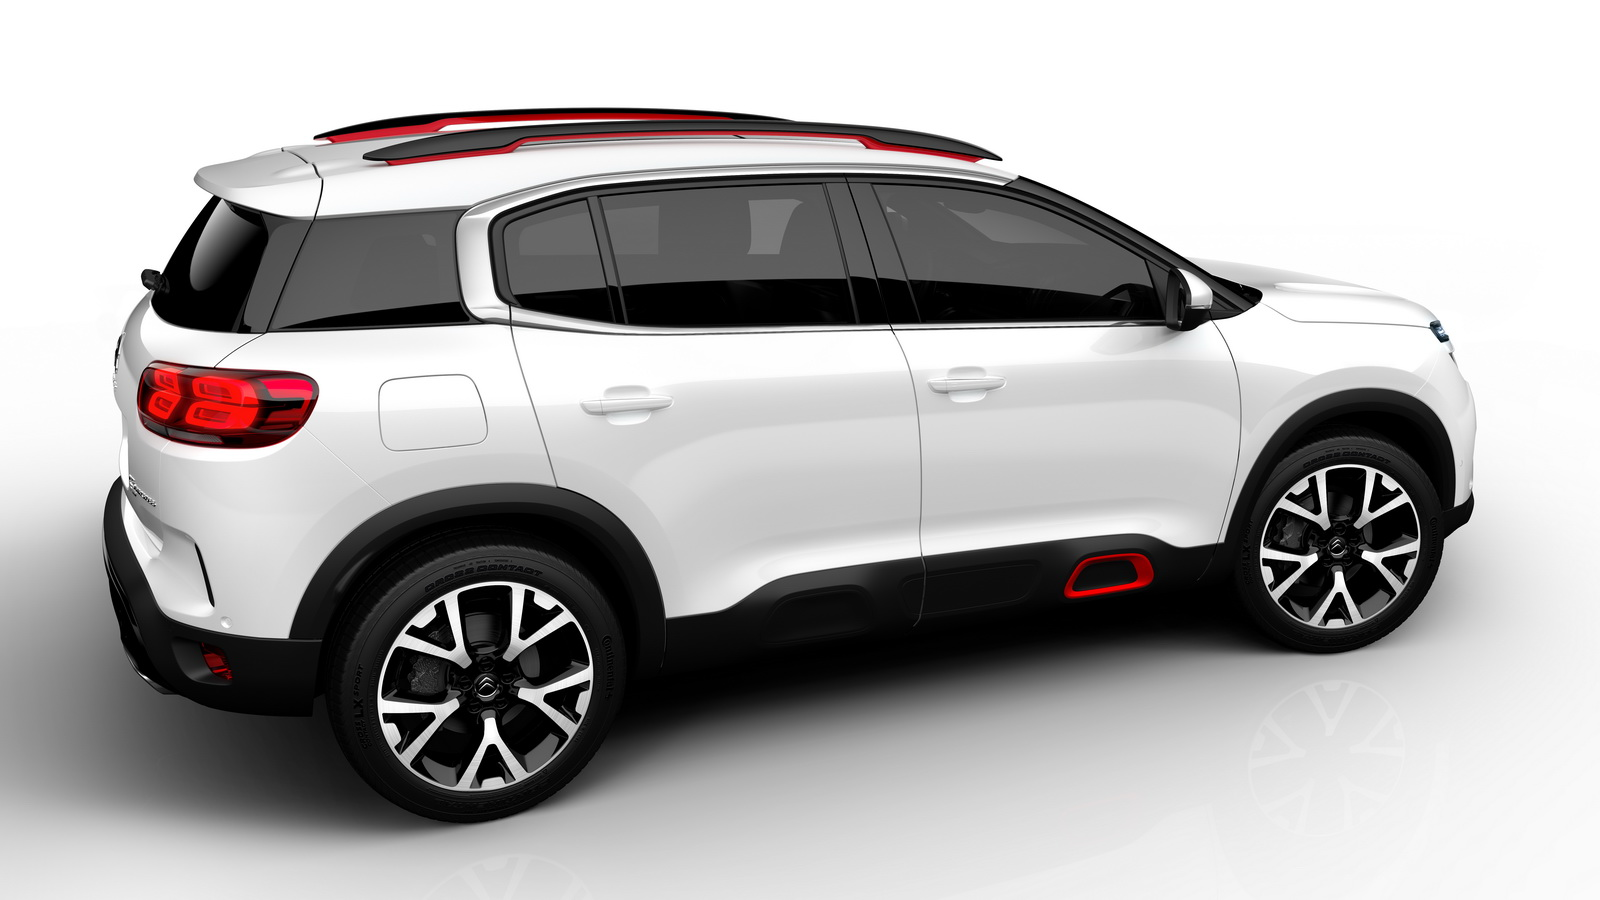 2018 Citroen C5 Aircross Officially Revealed, Gets ...